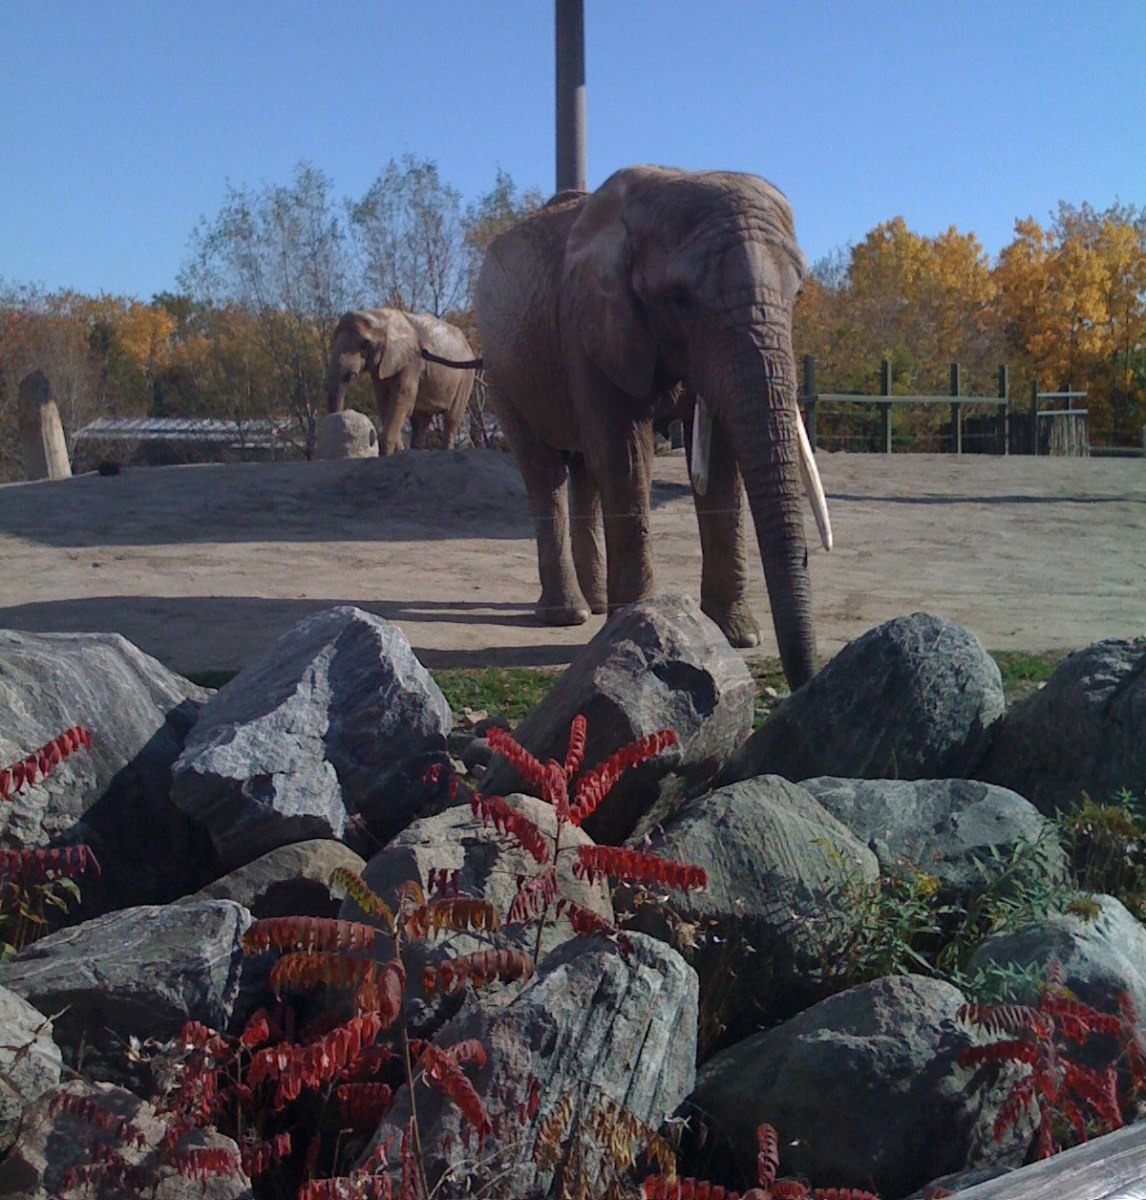 Autumn is a wonderful time to visit the zoo.